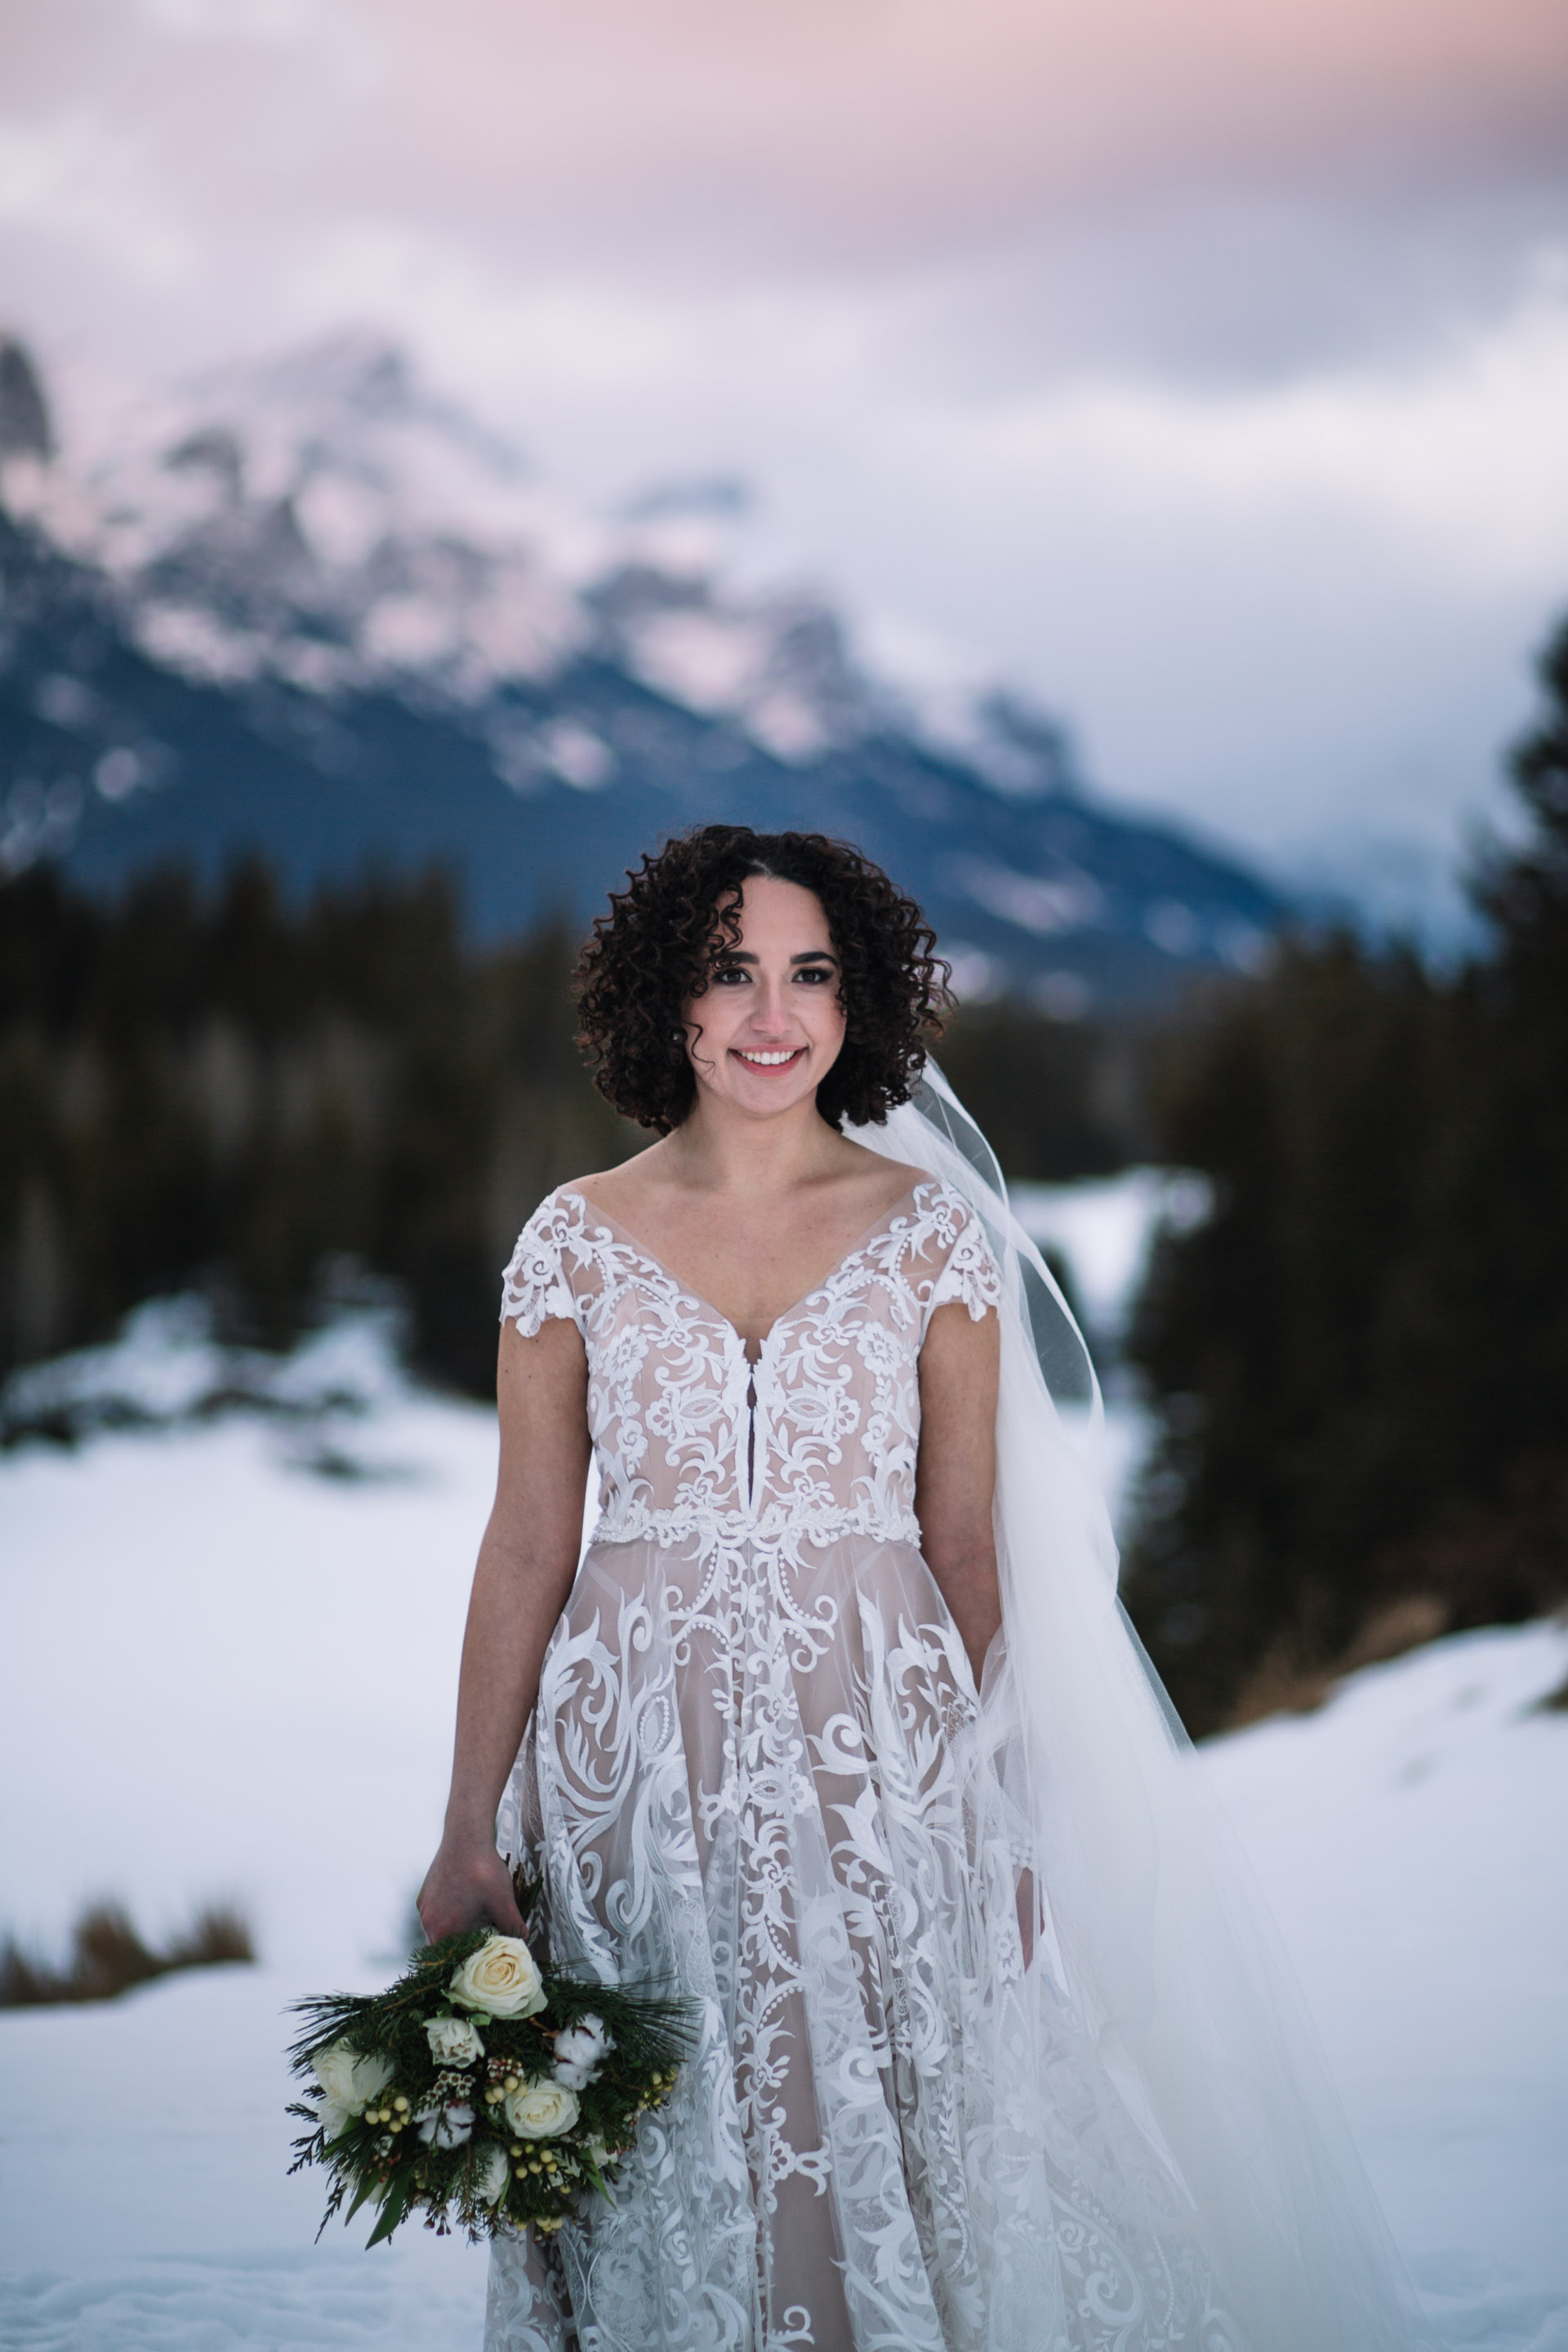 banff elopement, banff wedding photographer, banff wedding photographers, banff wedding photography, calgary photographers, Calgary wedding photgoraphy, calgary wedding photographers, canmore elopement, canmore wedding photogorapher, canmore wedding photographers, canmore wedding photography, intimate wedding, Steward Creek Golf Course, Stewart Creek Golf Course Wedding, winter wedding, winter wedding photography,